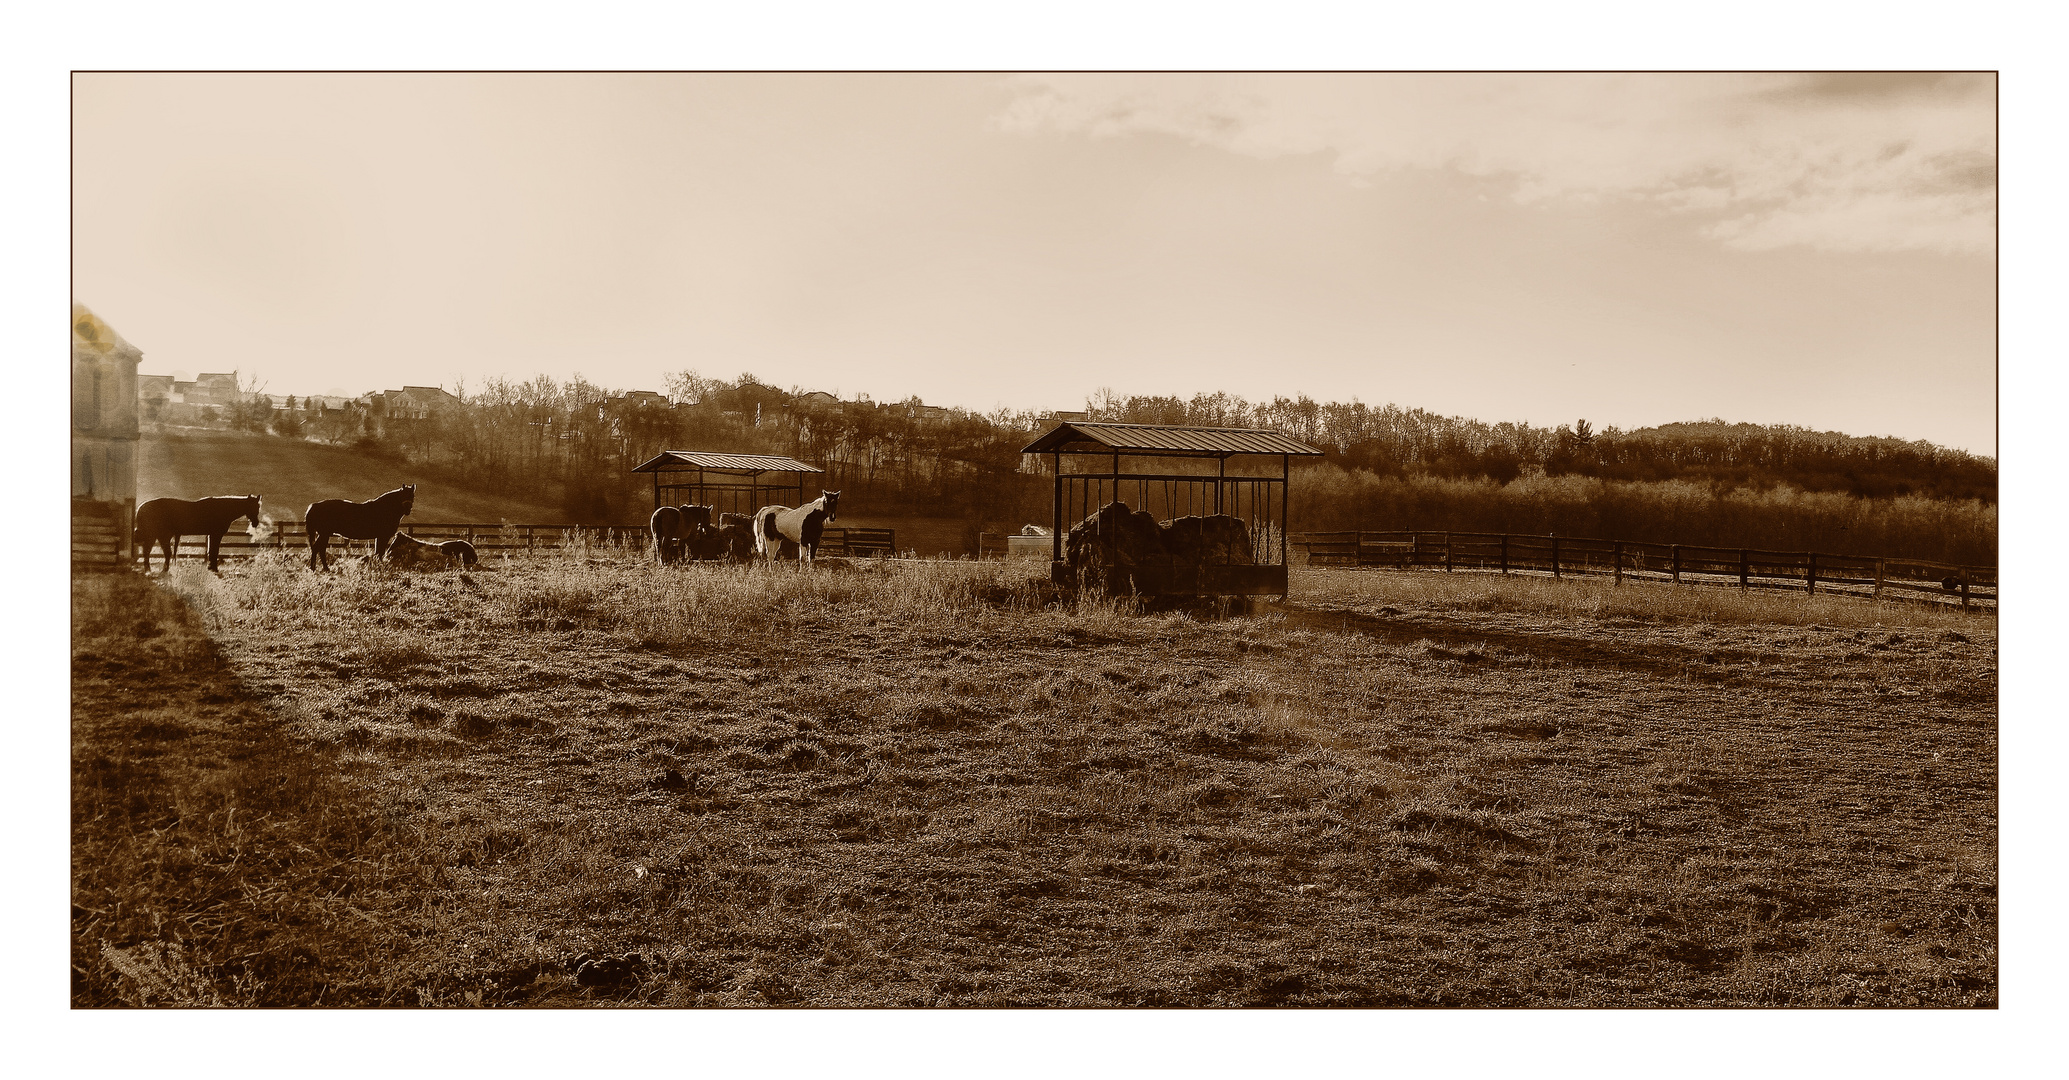 Early morning out by the Horse Farm